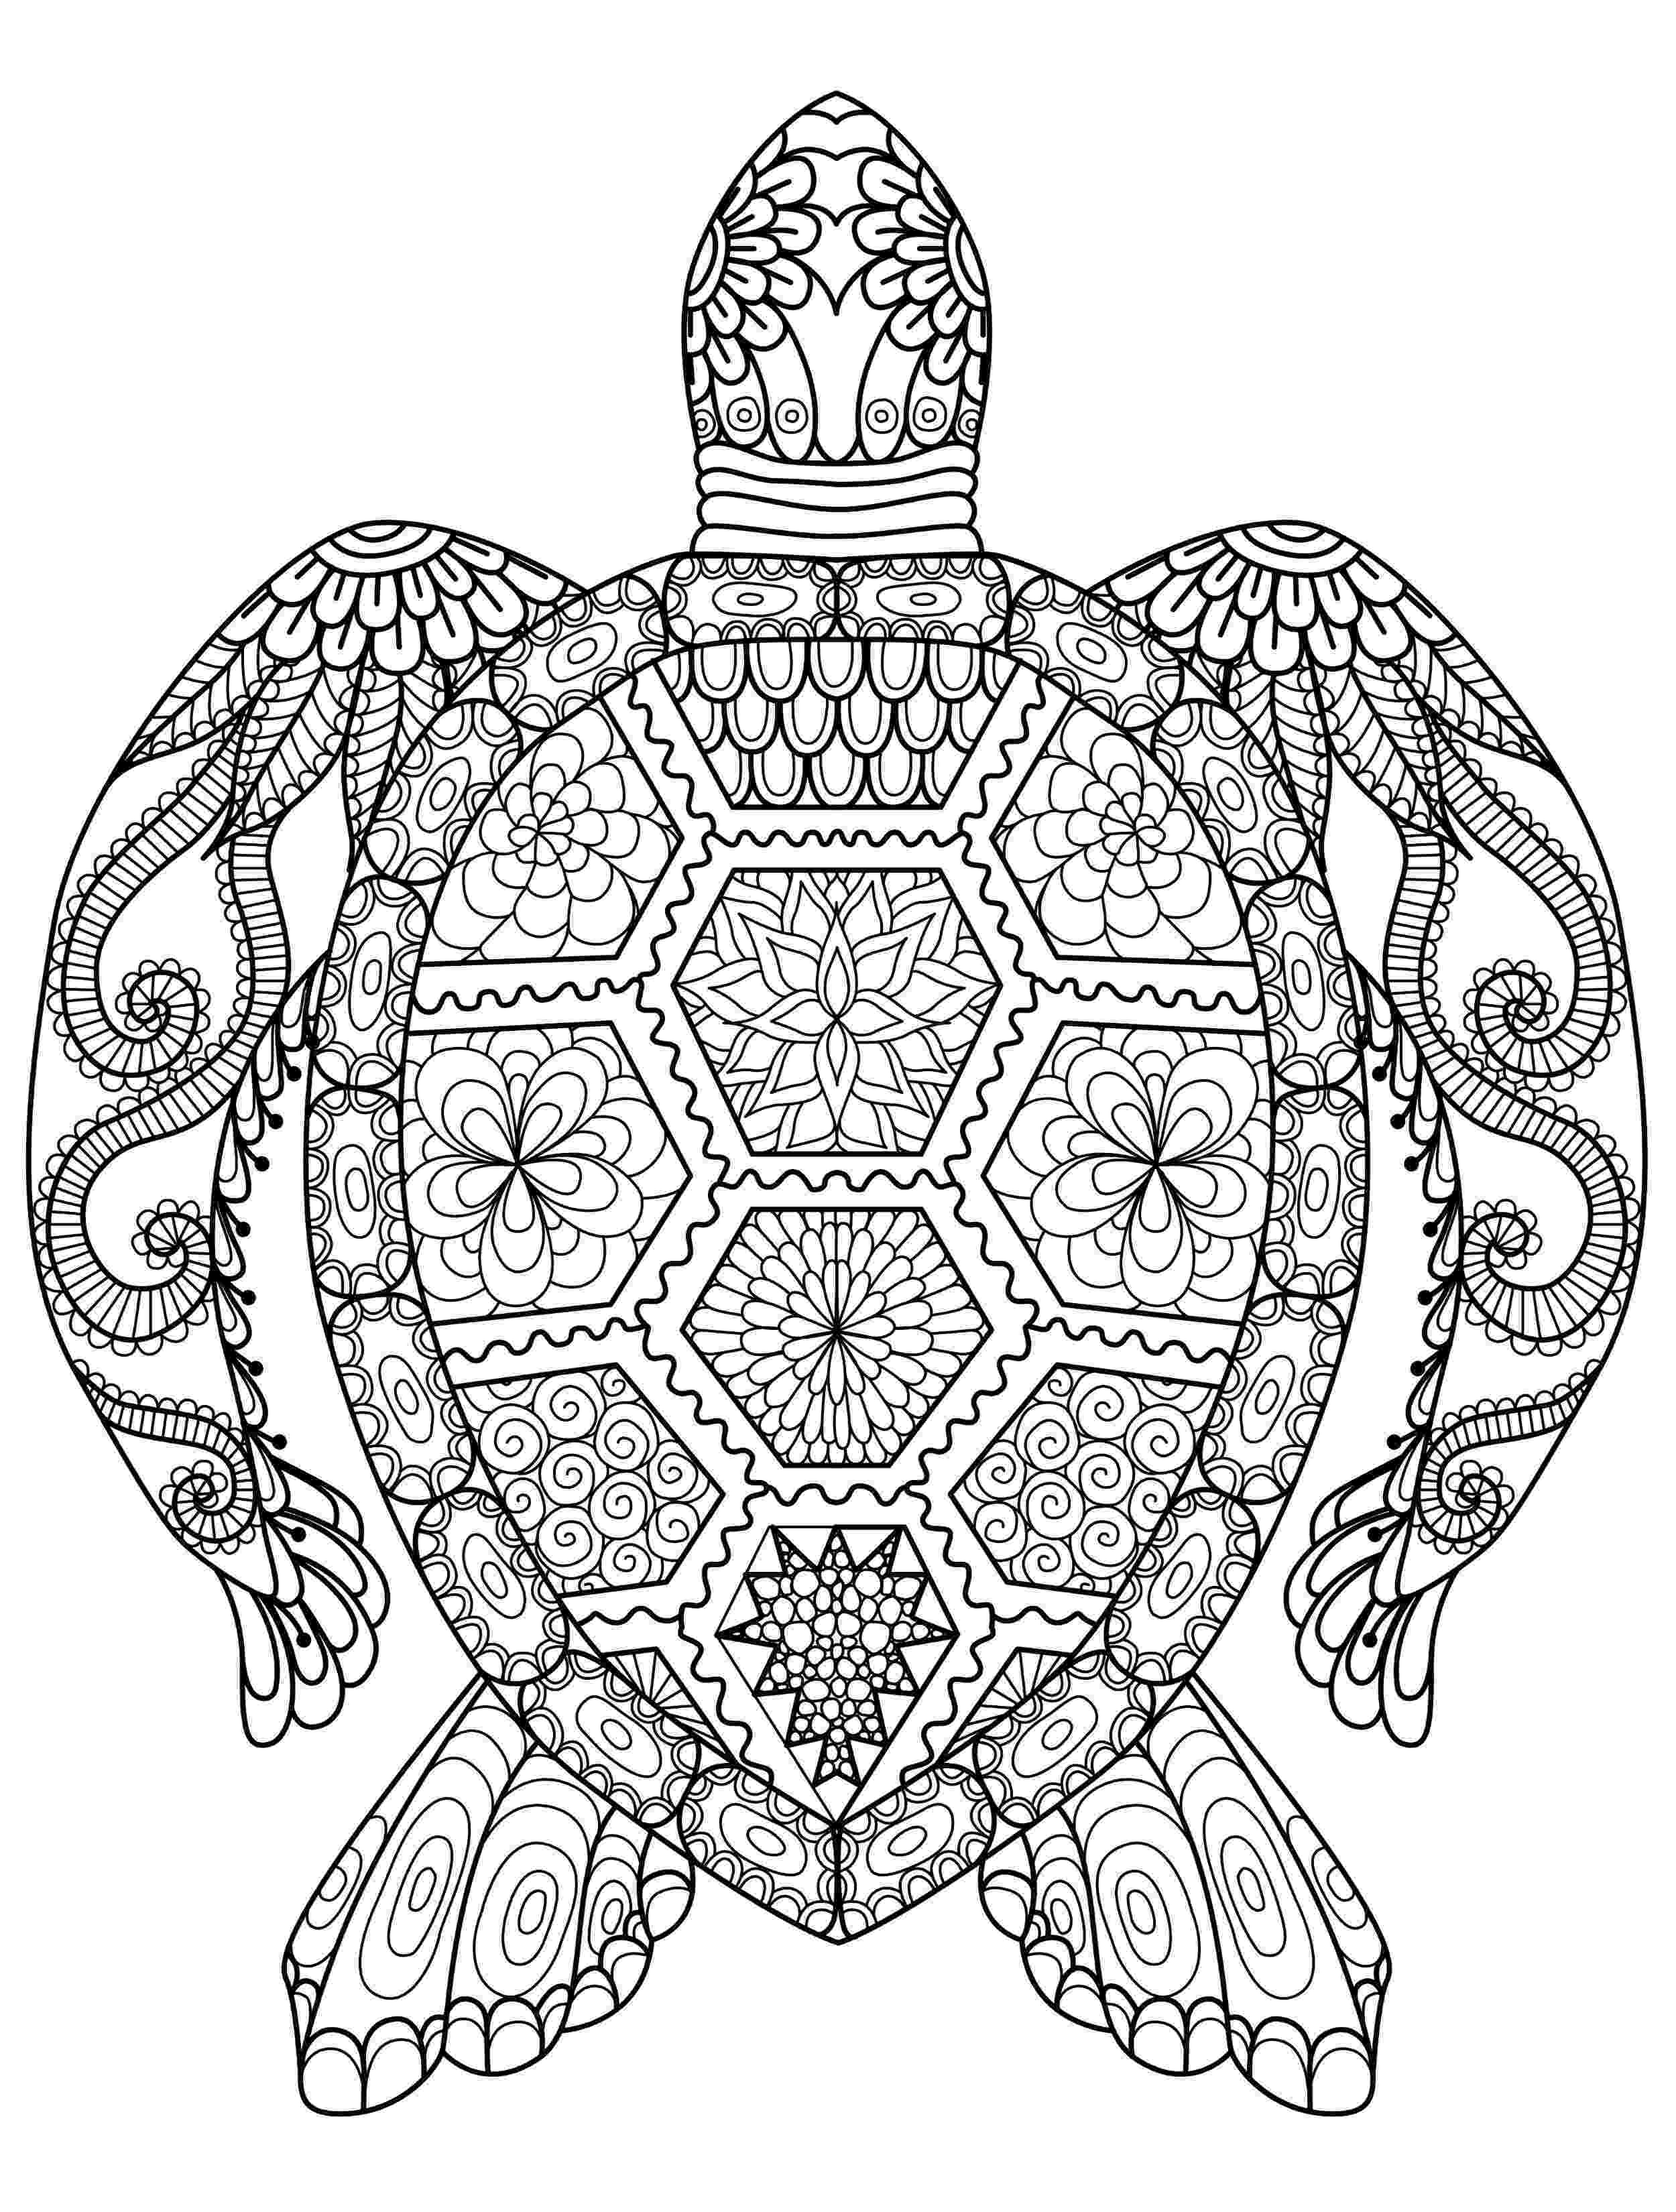 mandala coloring pages for adults free coloring pages free printable mandala coloring pages adults coloring pages free for mandala